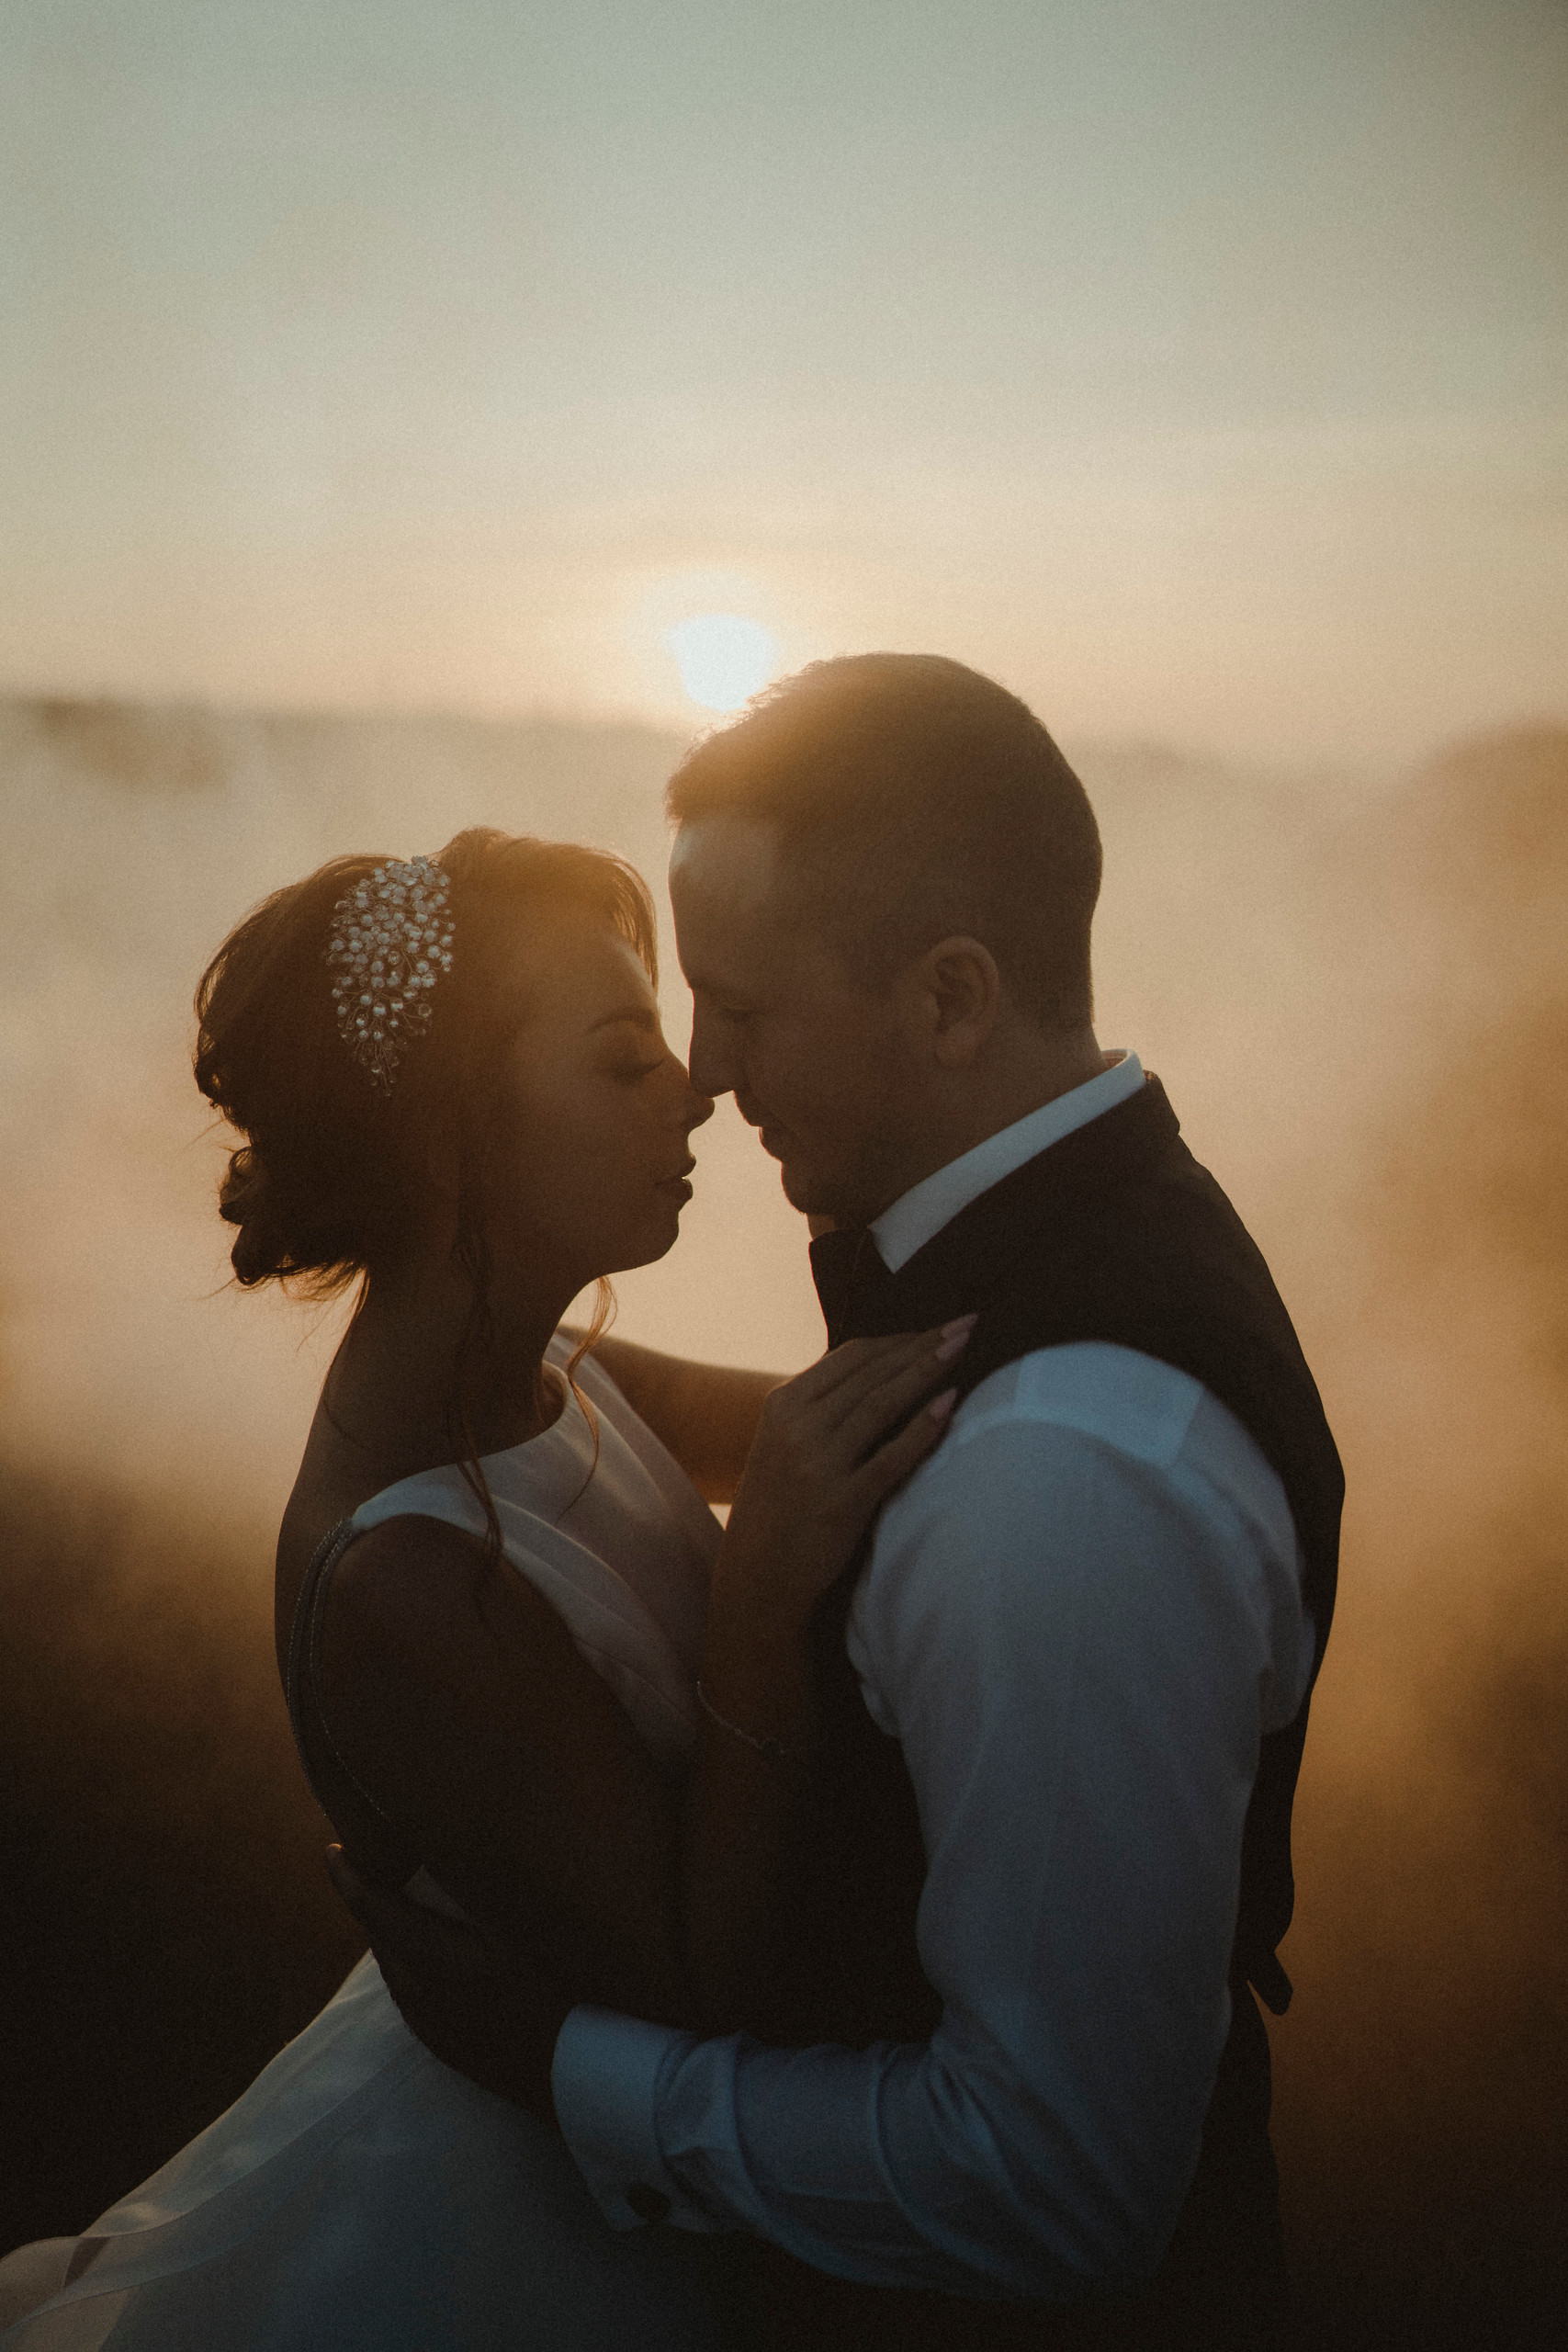 Bride and groom hold each other close as the sun is setting behind them